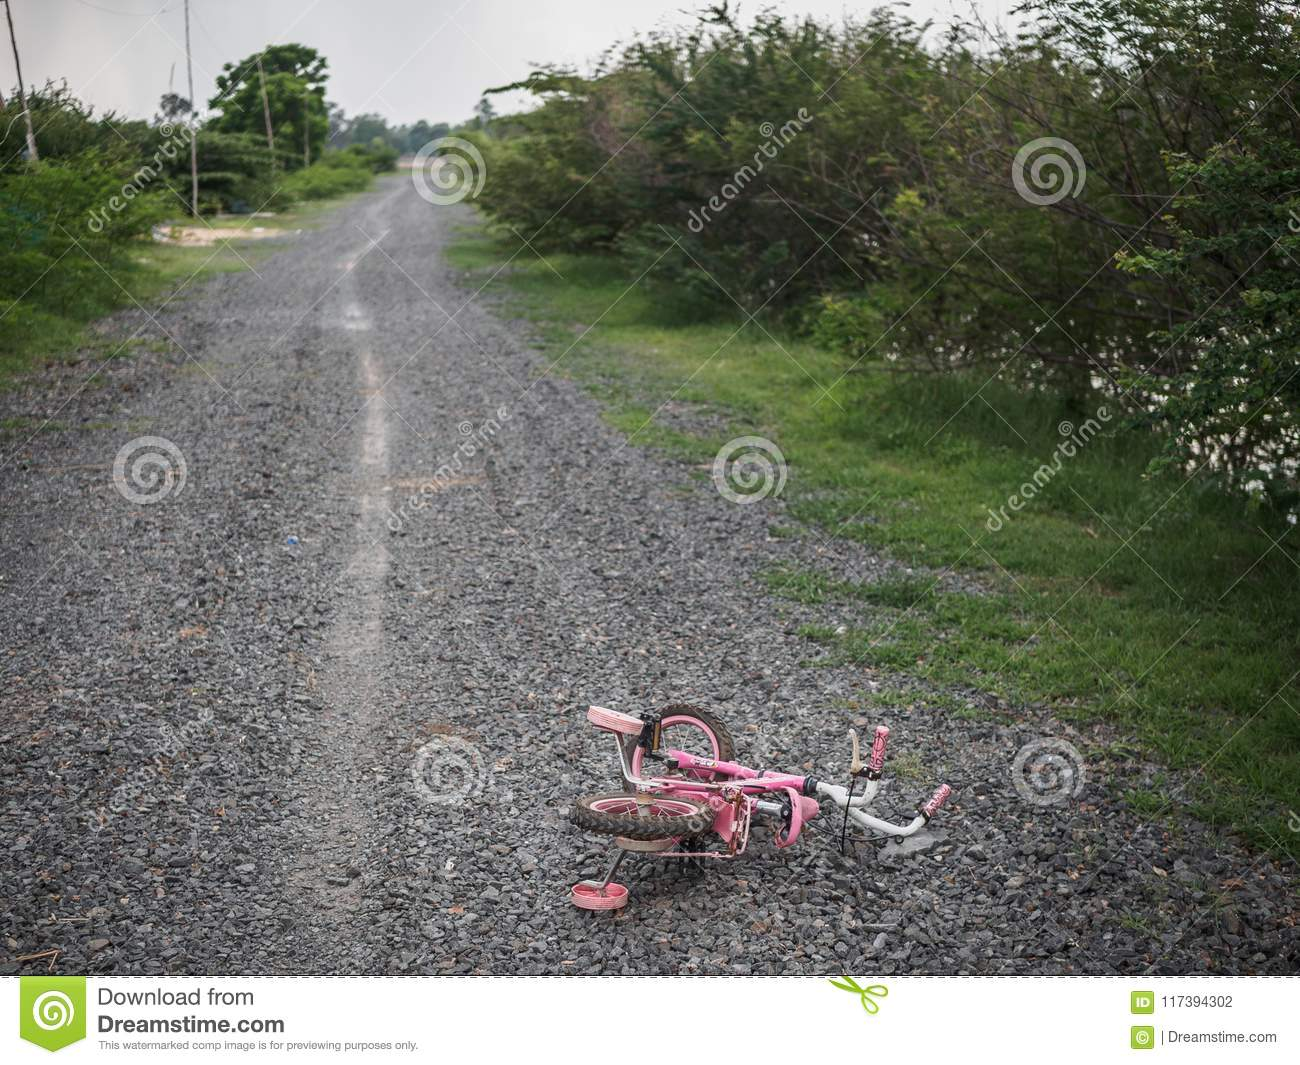 Children`s bikecycle and shoe on stone road. missing children co